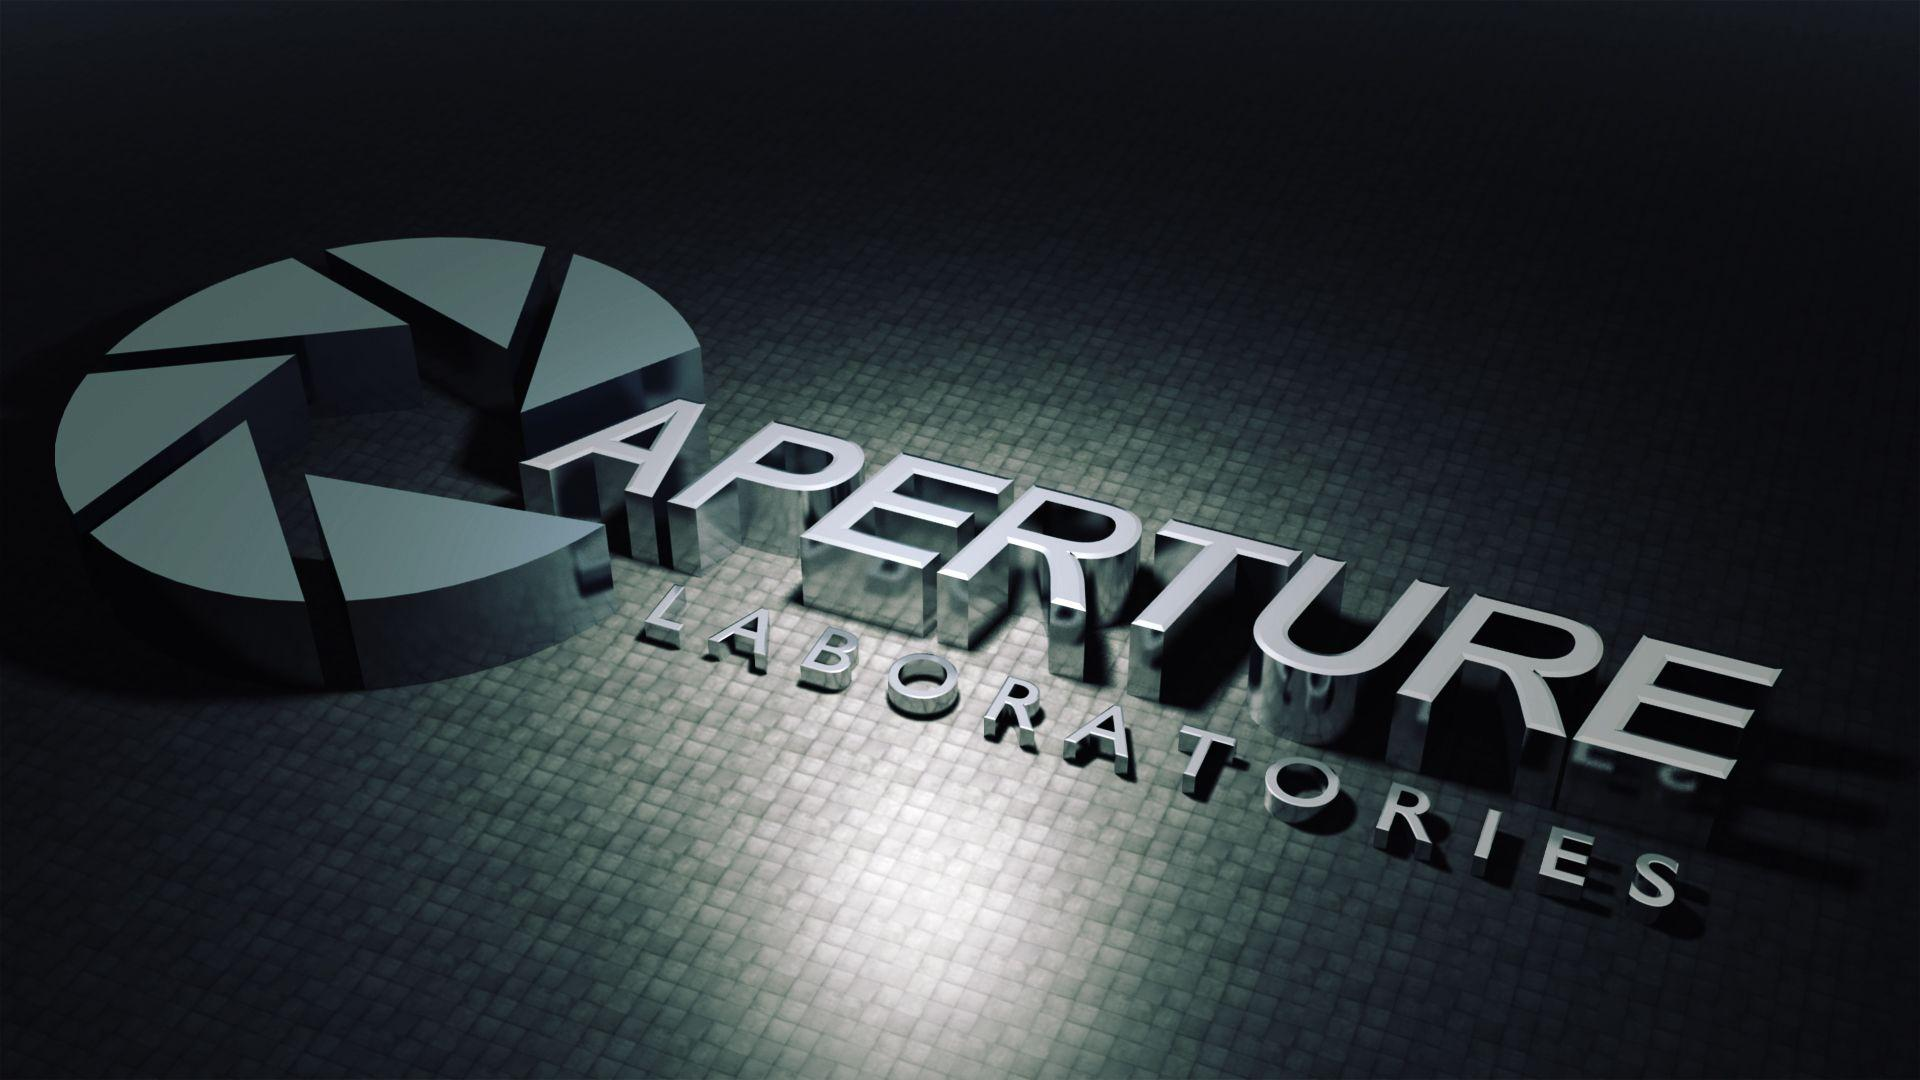 Aperture Laboratories Wallpapers - Wallpaper Cave